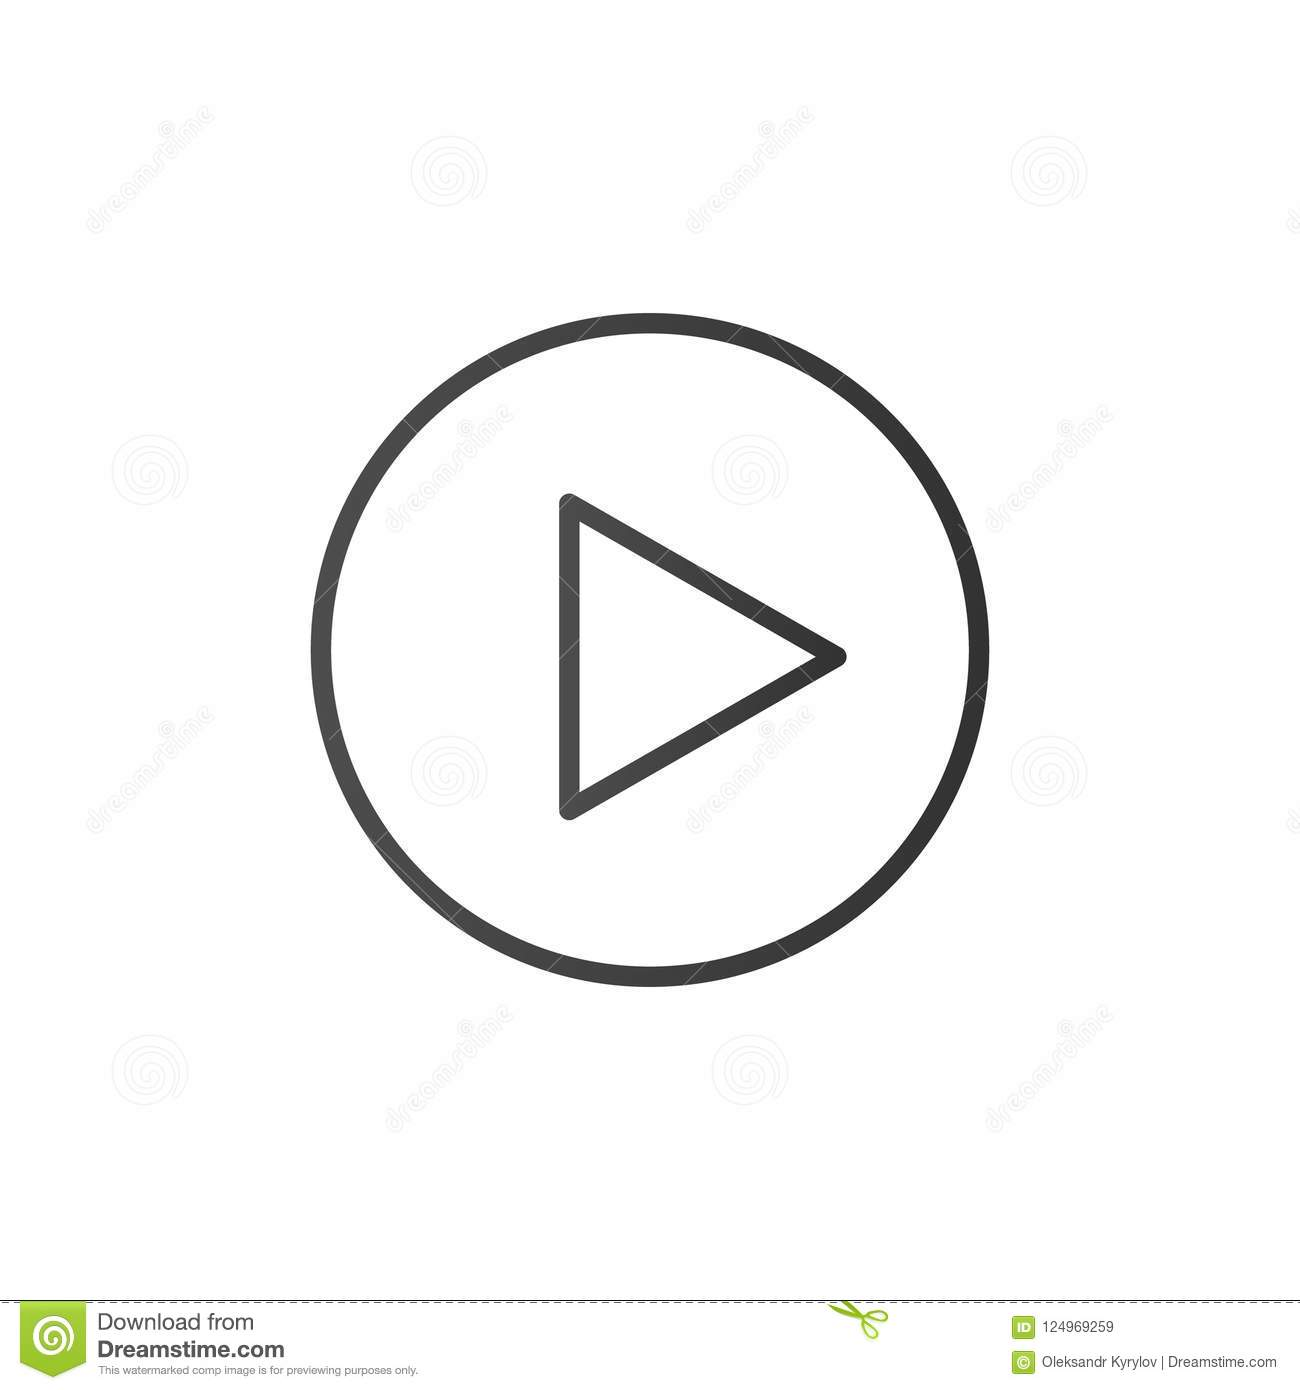 Play button, line icon. Vector outline media sign. Trendy flat outline ui sign design. Thin linear graphic pictogram for web site,